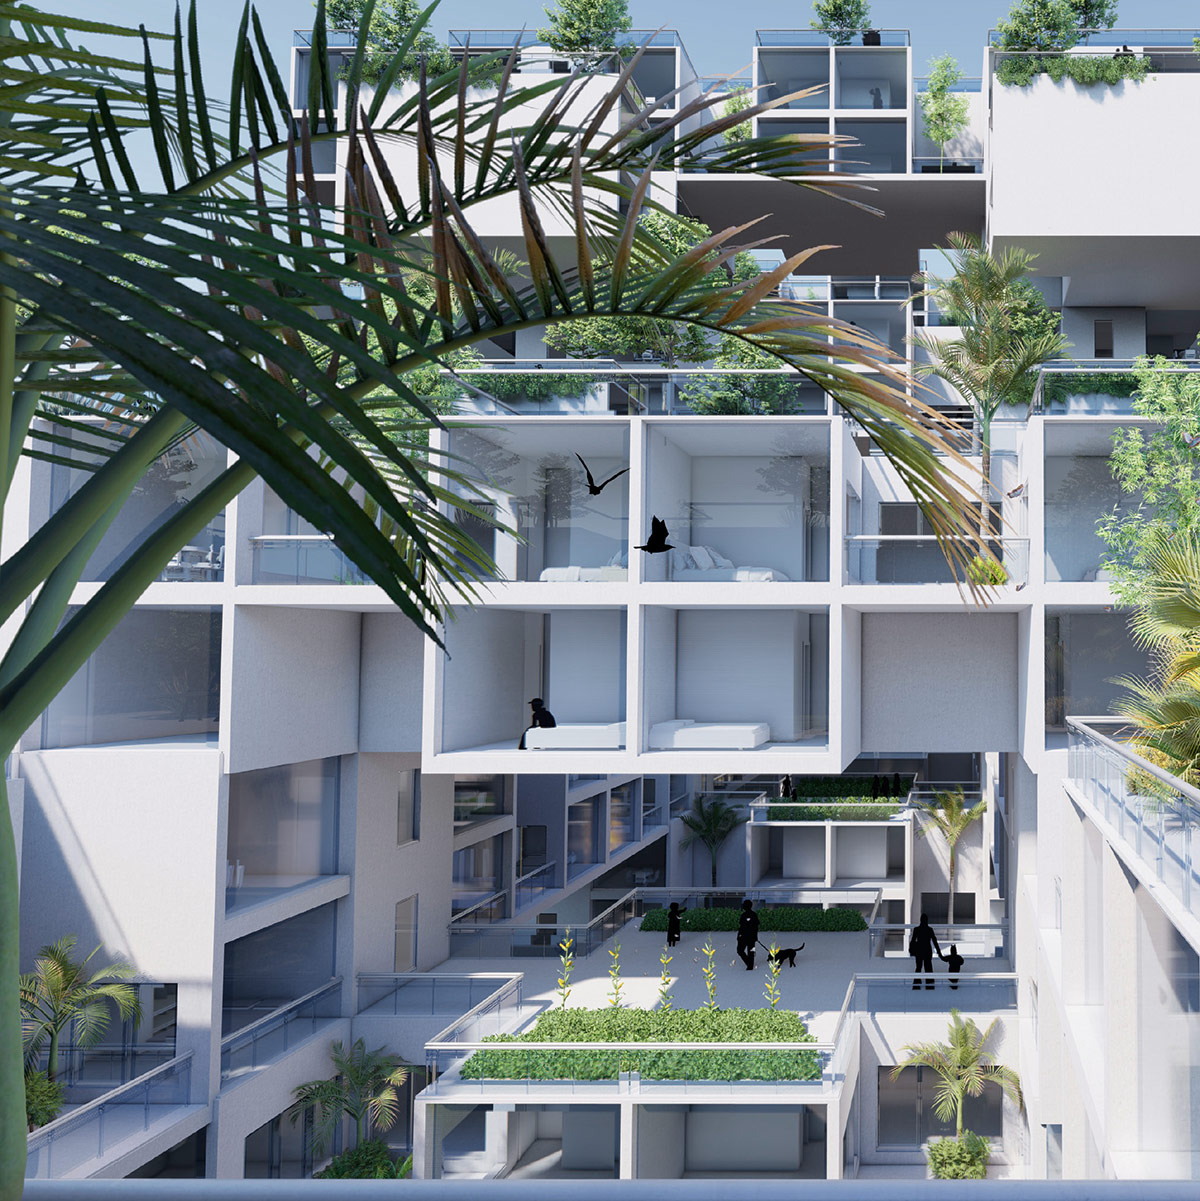 External courtyard perspective of a modular housing proposal for Tempe, Arizona by student Weicheng Wang